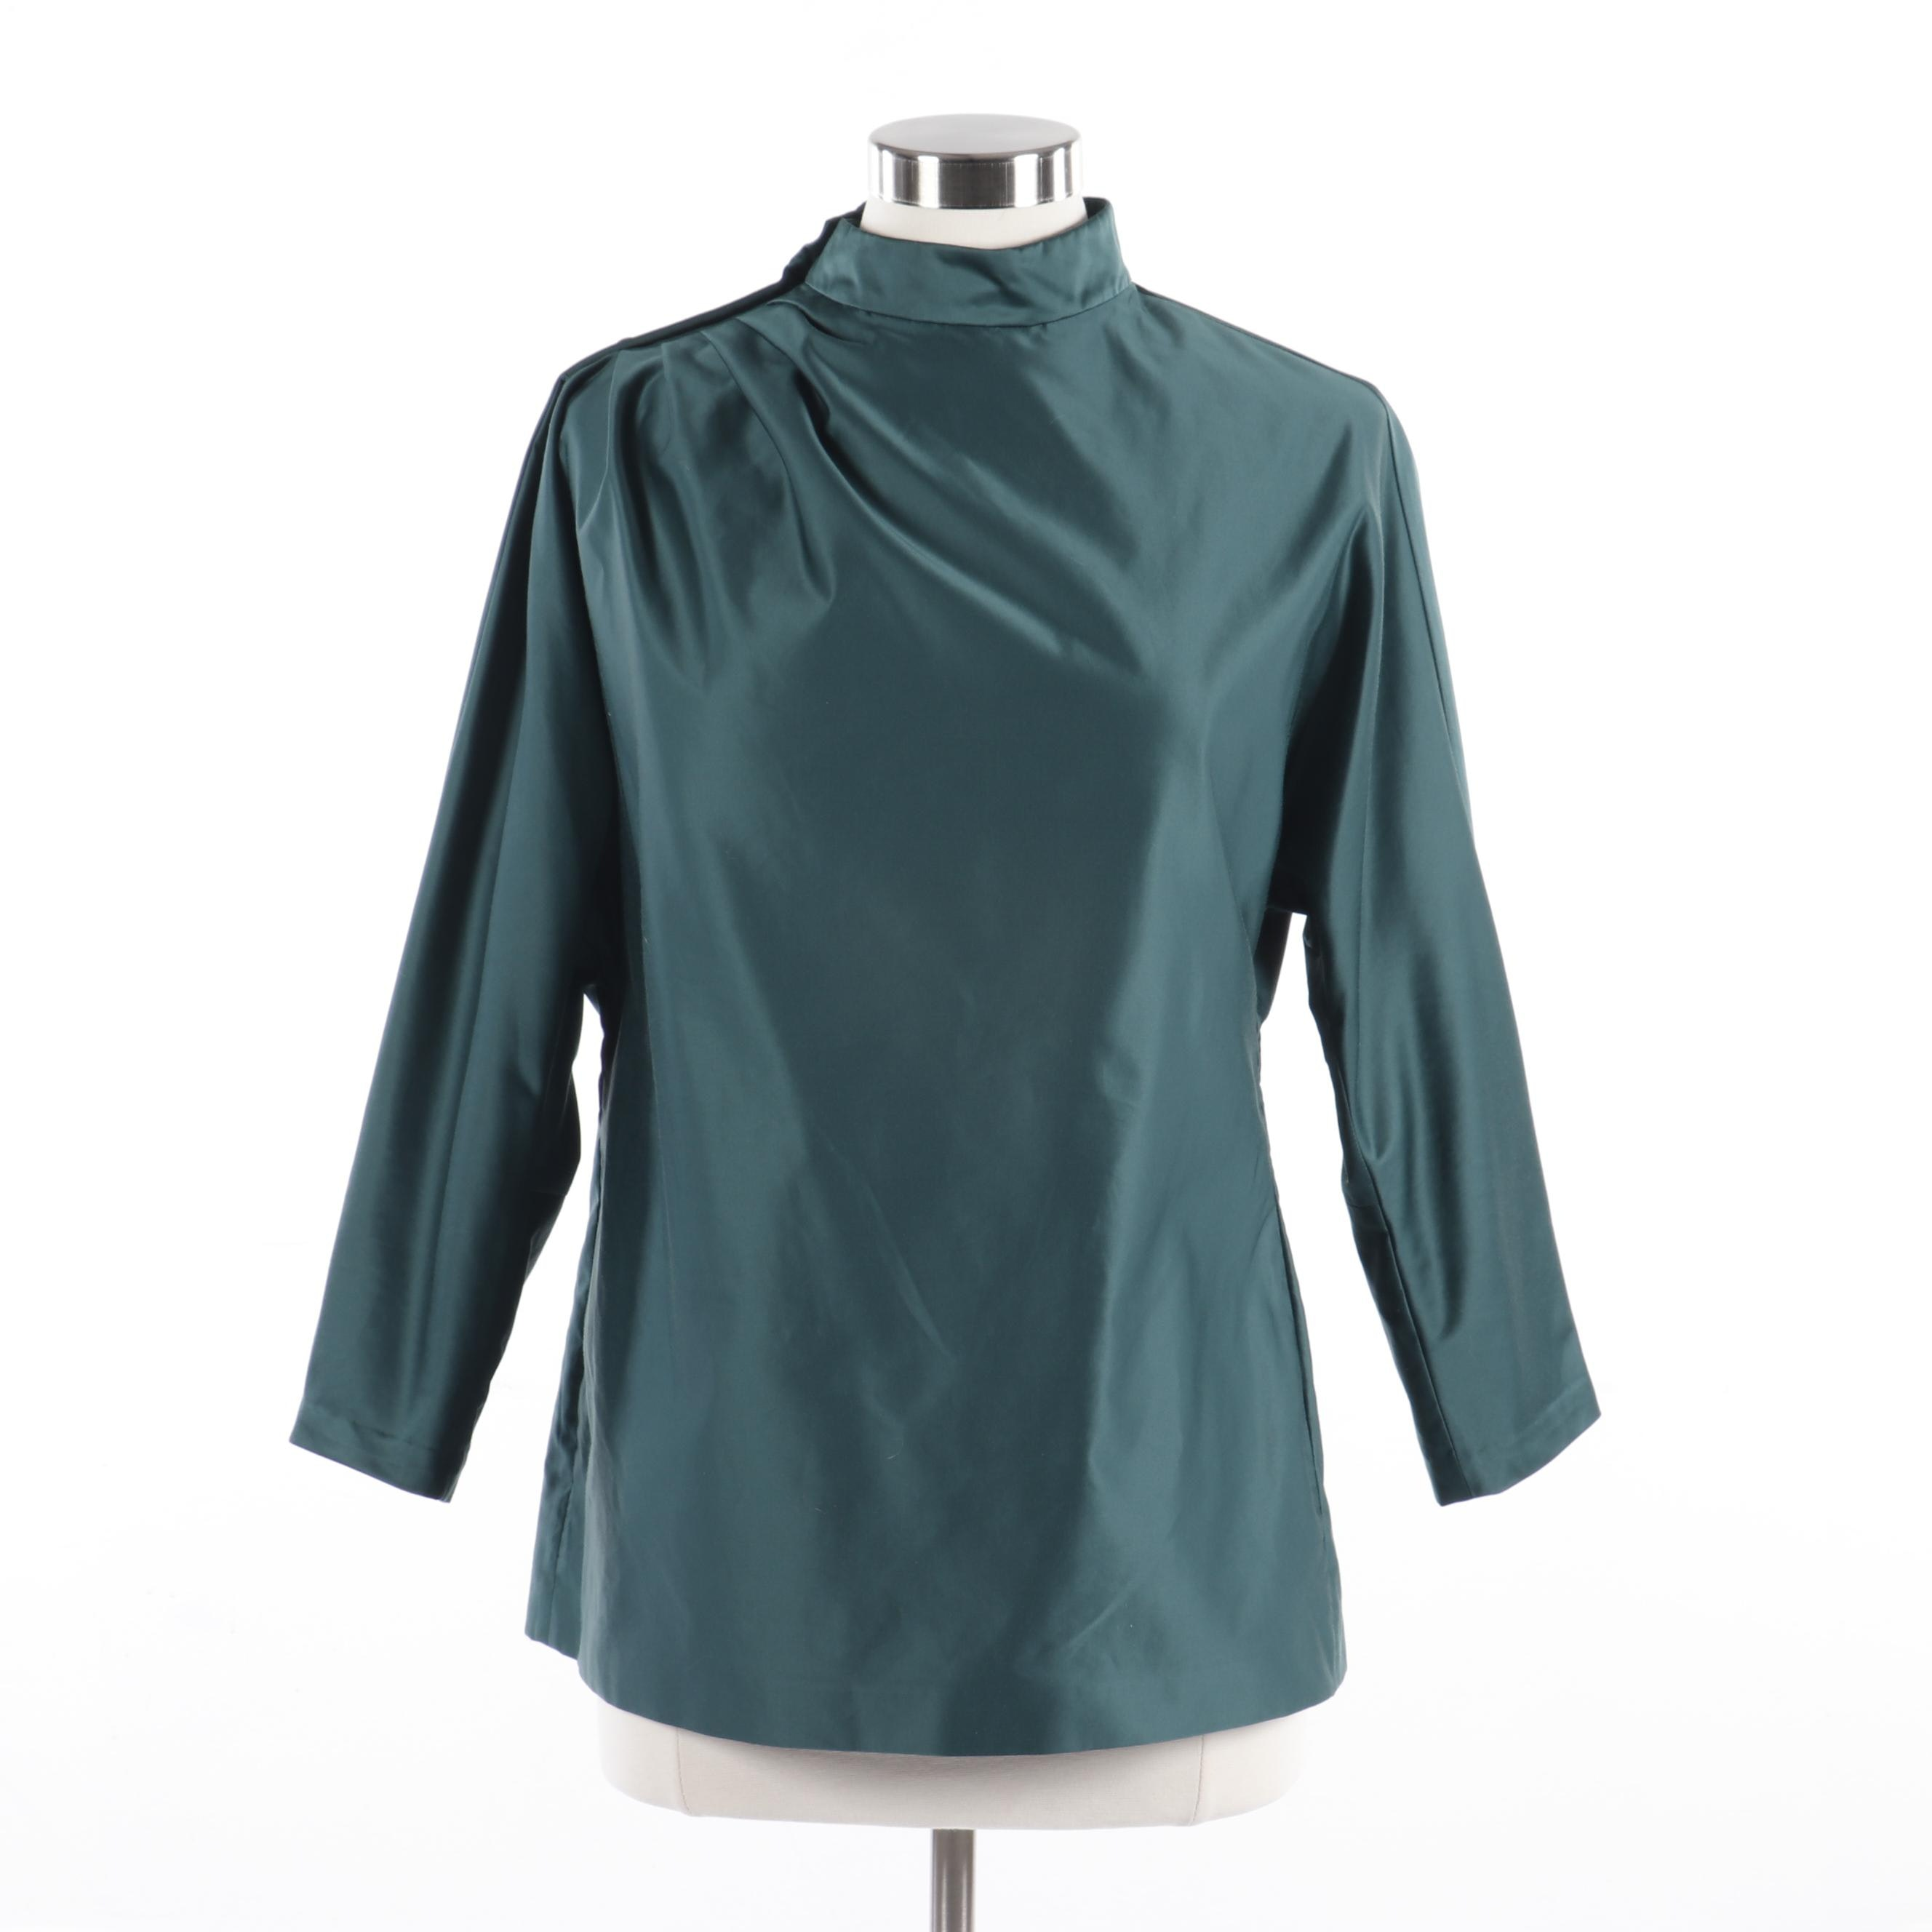 Yves Saint Laurent Dark Green Blouse from the 2010 Fall Collection